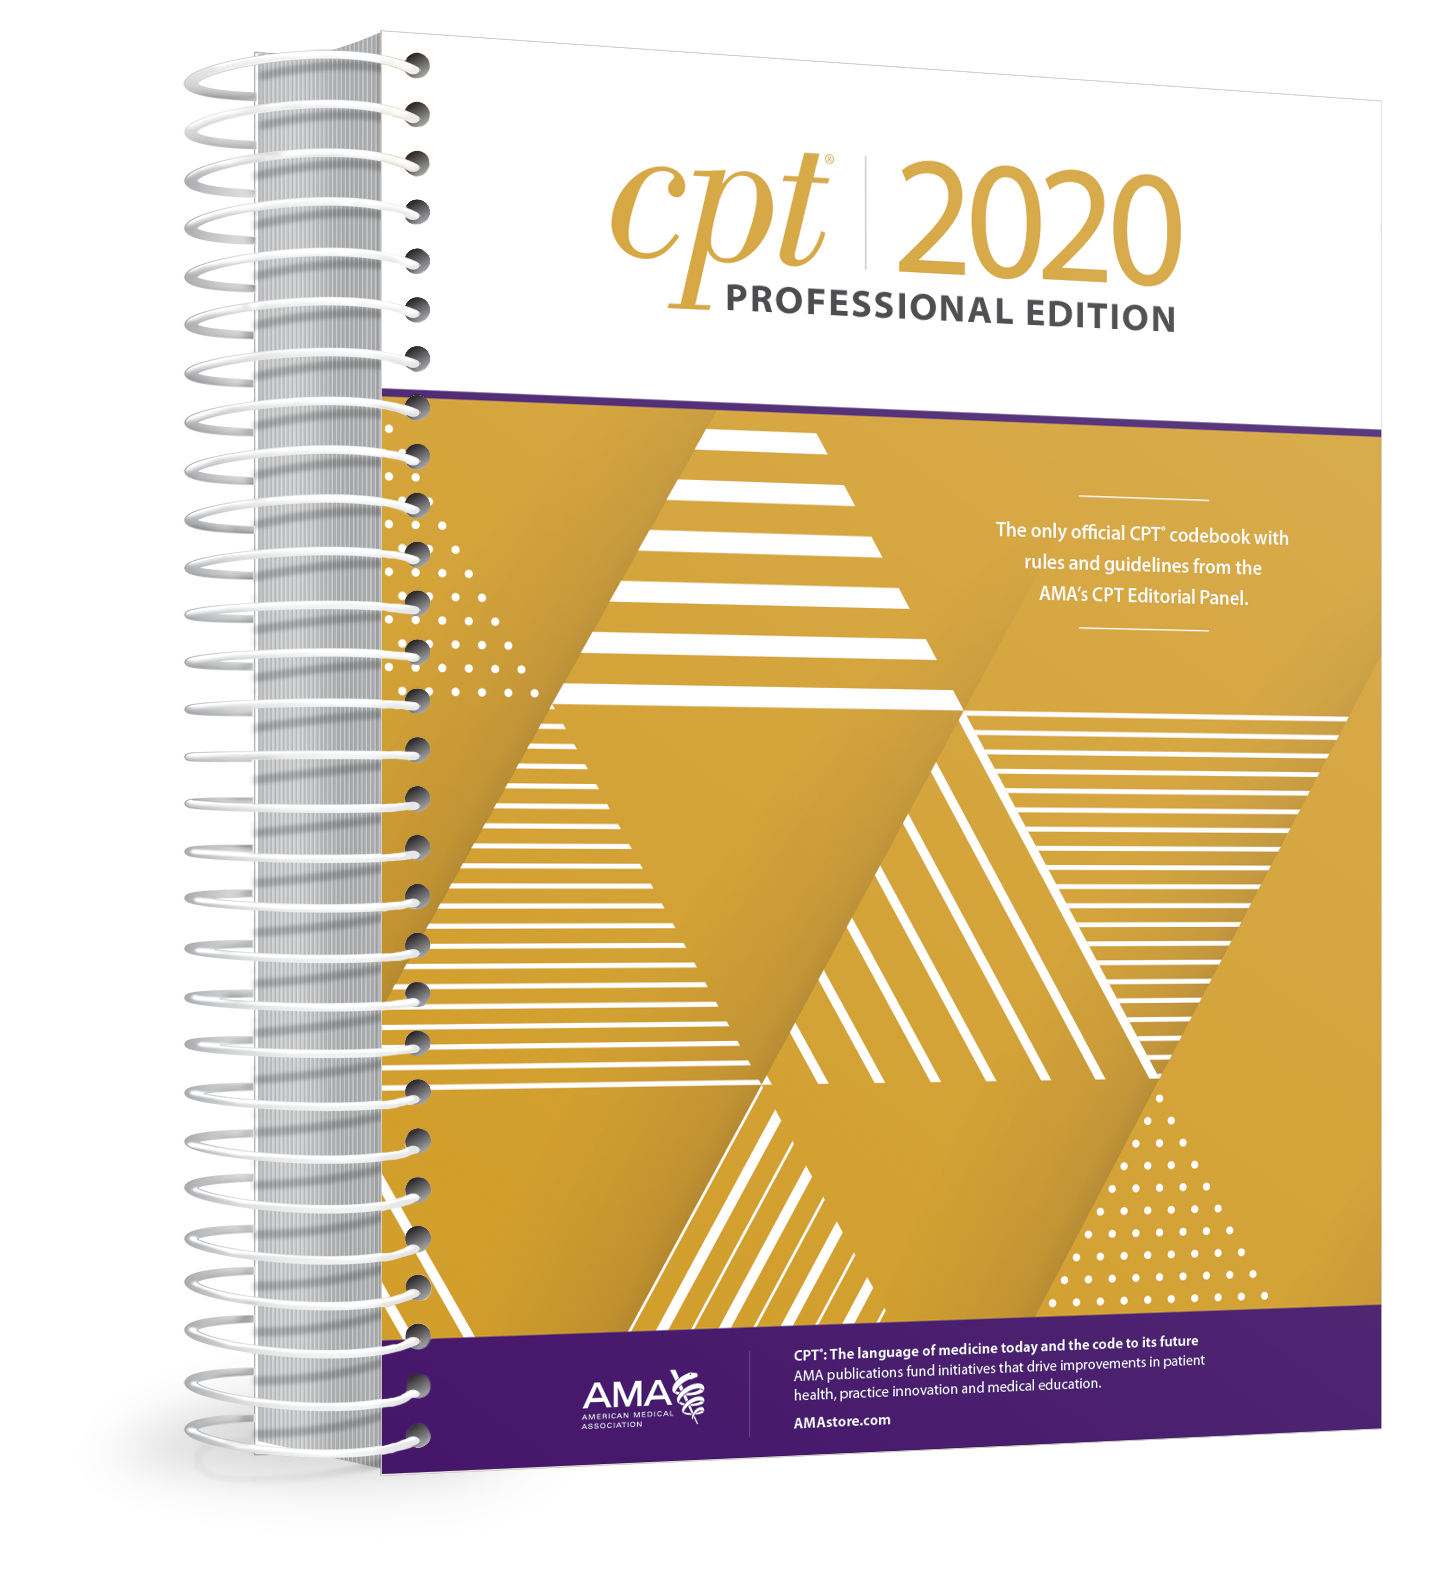 2019 CPT Professional_2020_spiral_3D_tra